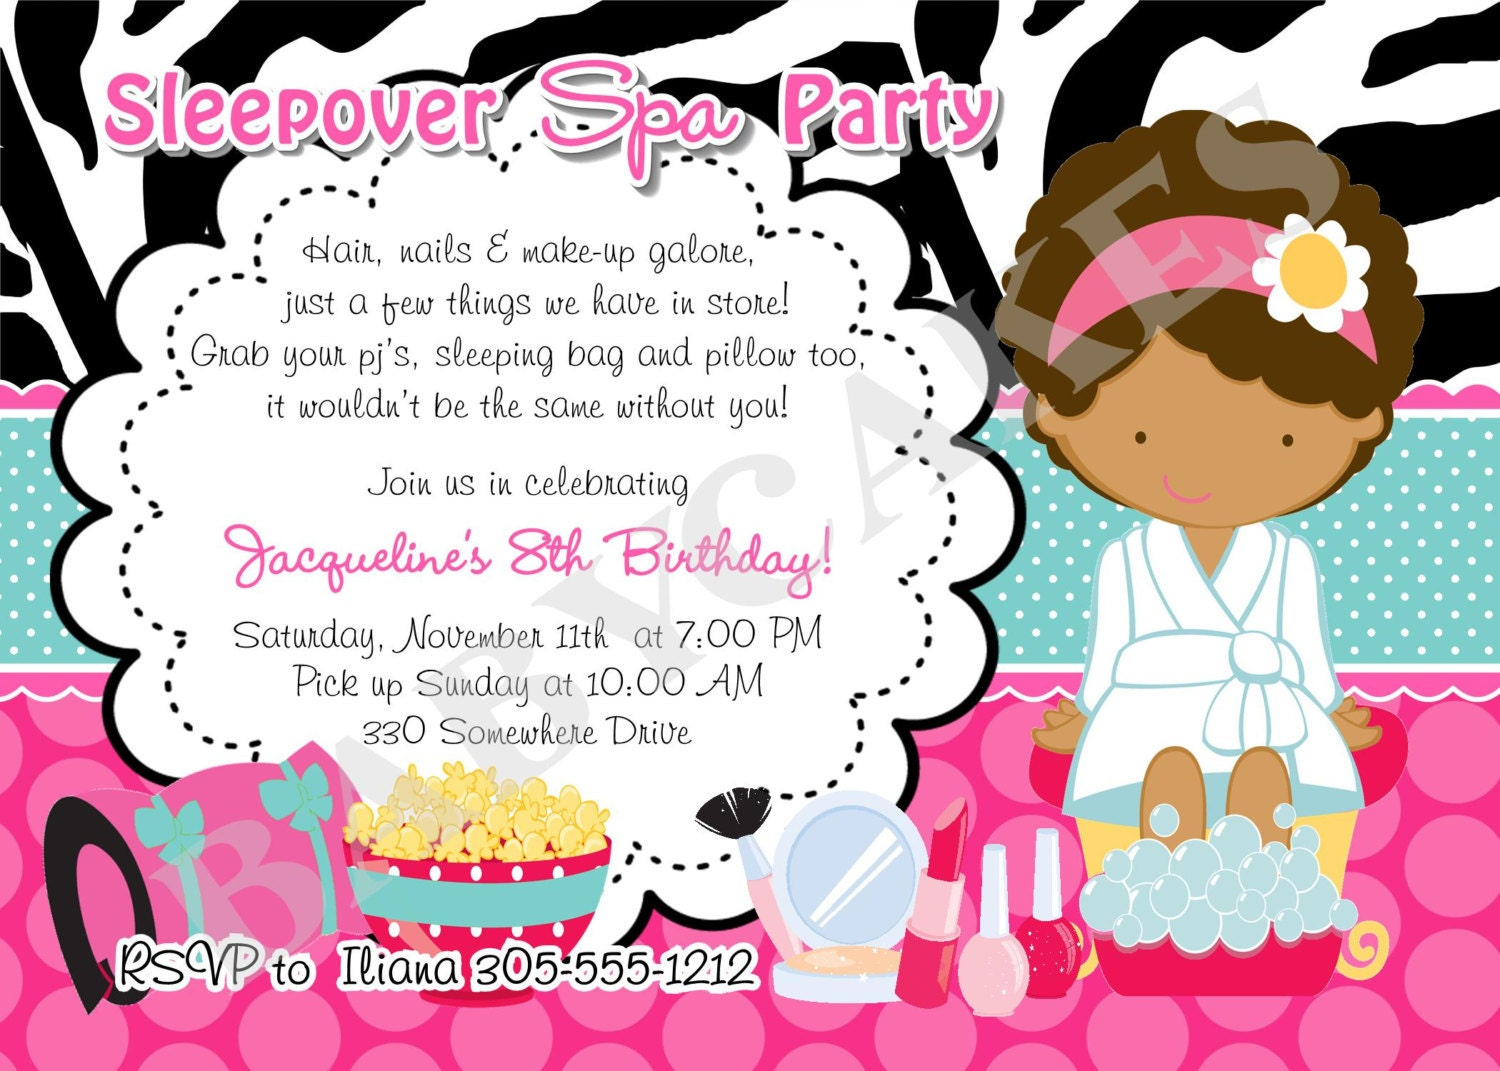 Spa Sleepover Invitation DIY Print Your Own by jcbabycakes